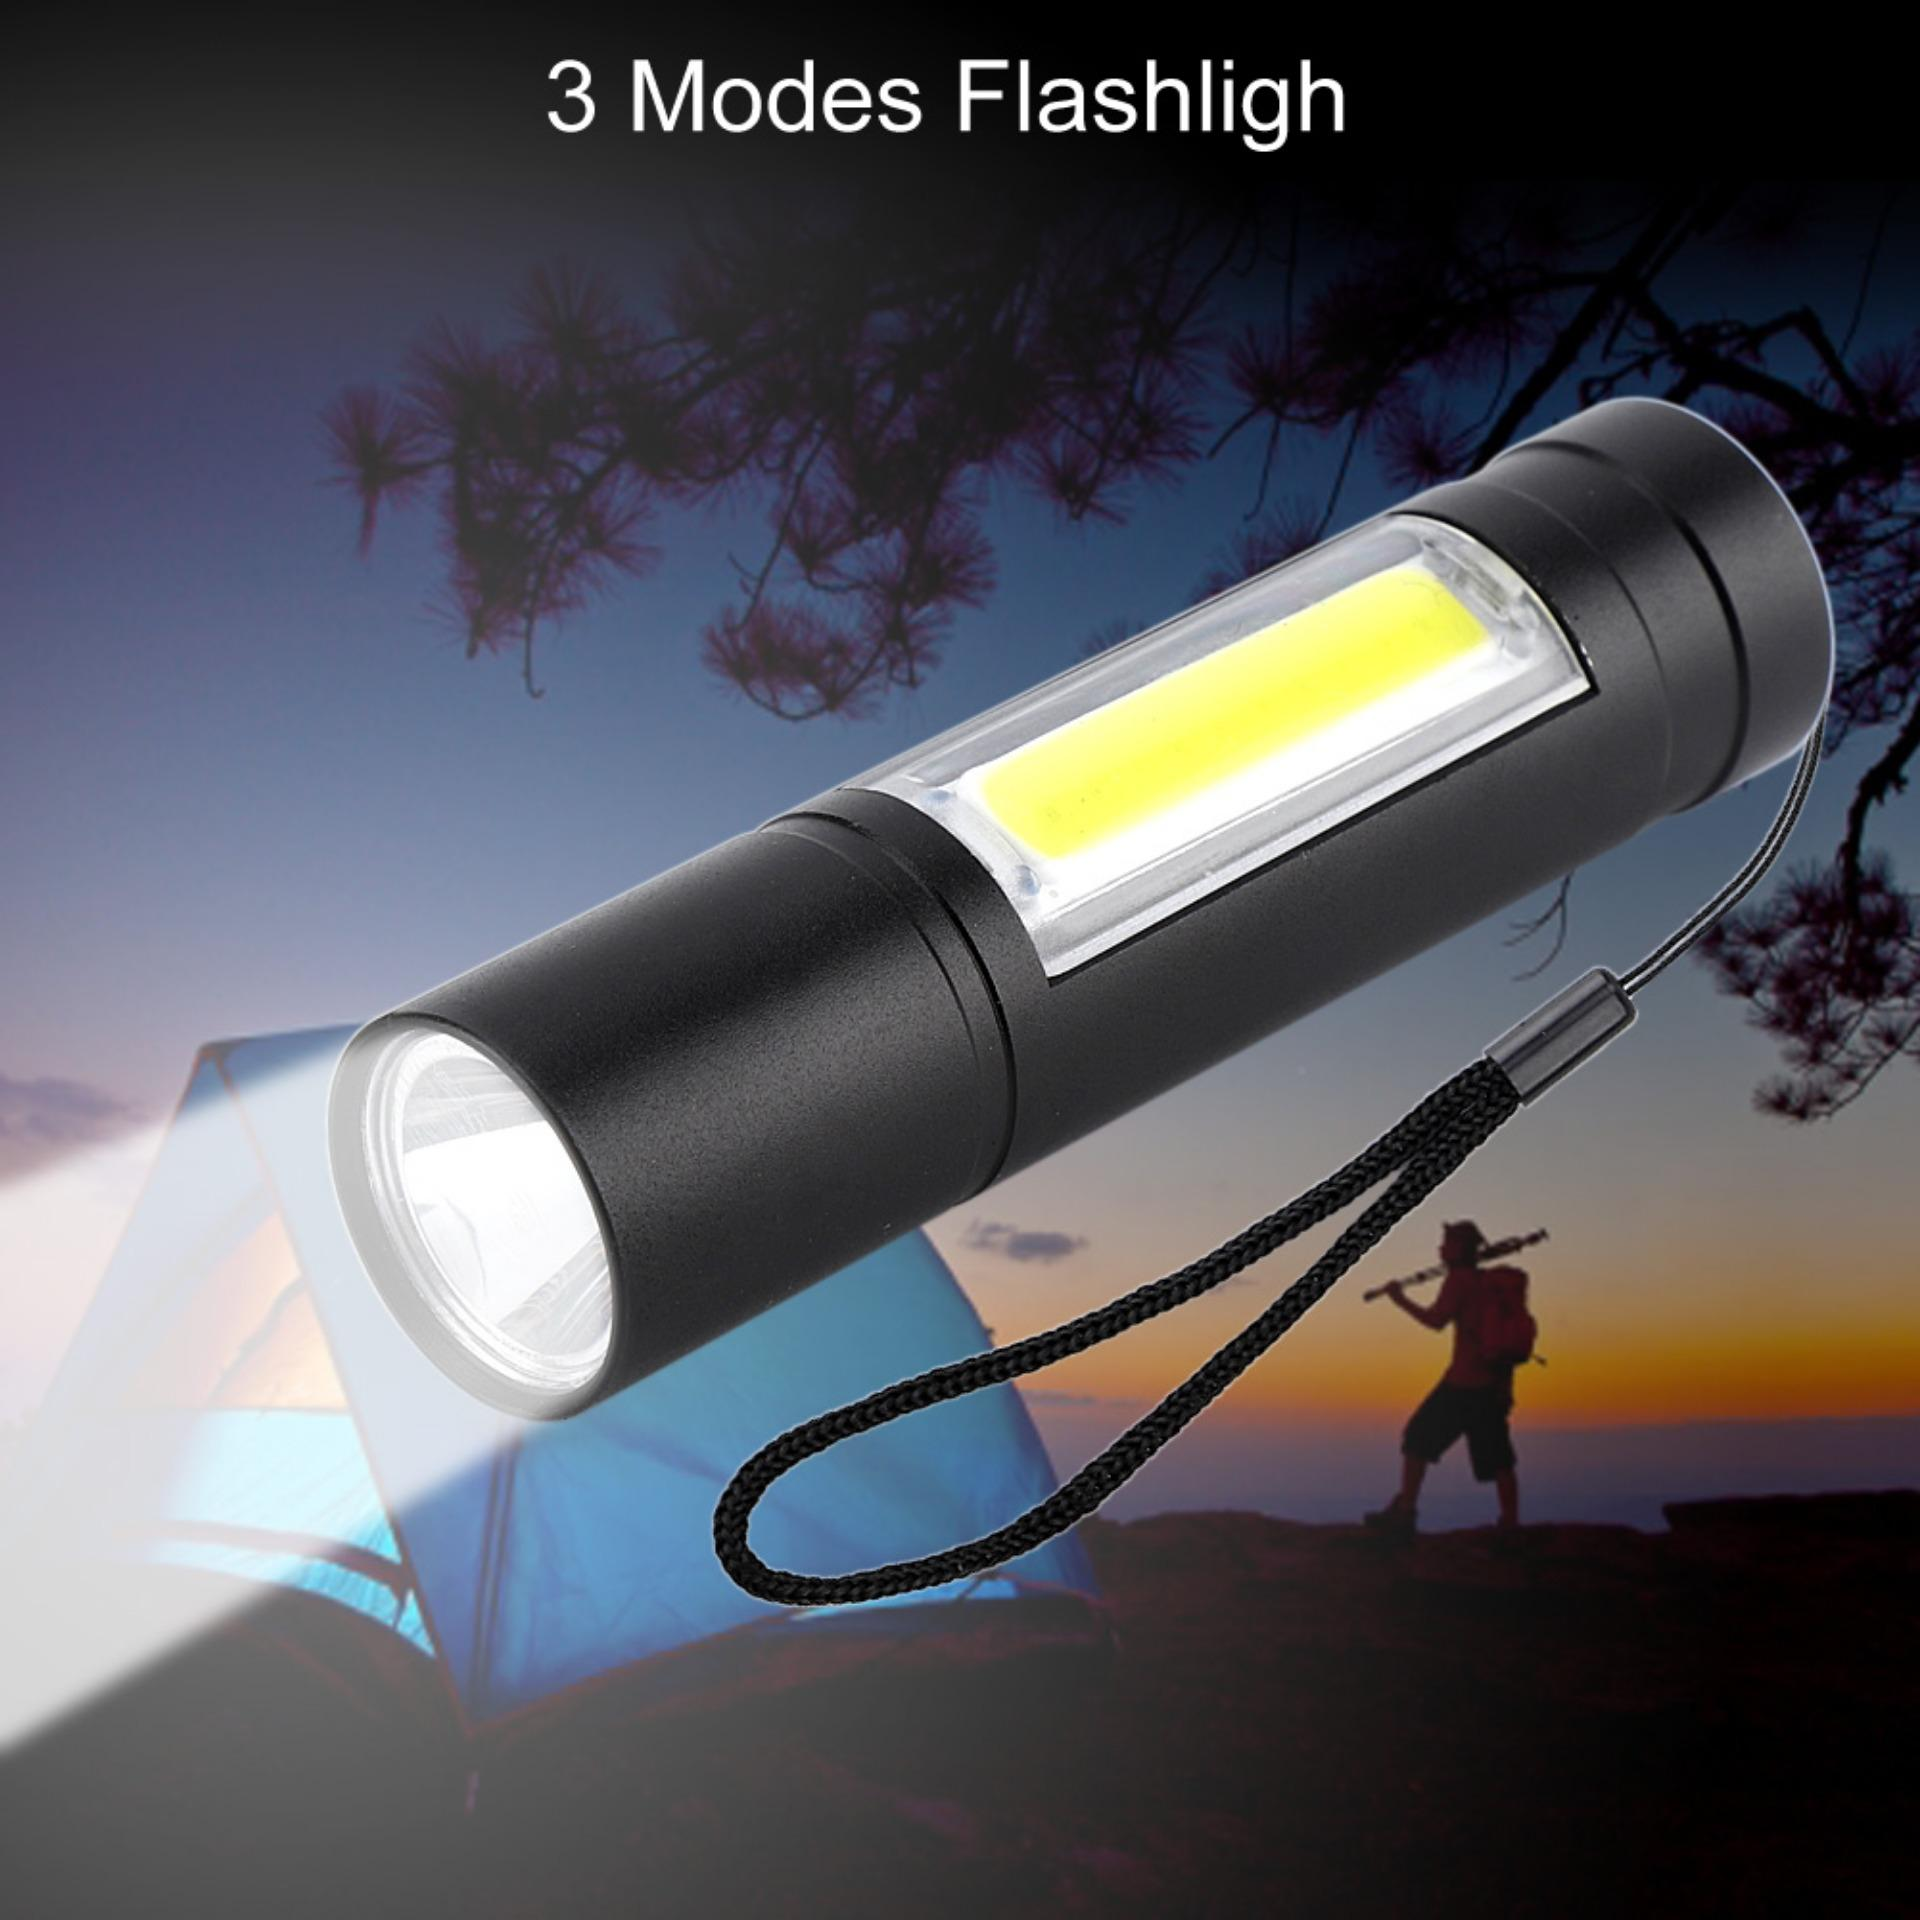 Flashlight For Sale Flash Light Prices Brands Review In How To Build Led Torch Rechargable Waterproof Zoom Xpe Cob Pocket Small Penlight 3 Modes Projector Intl